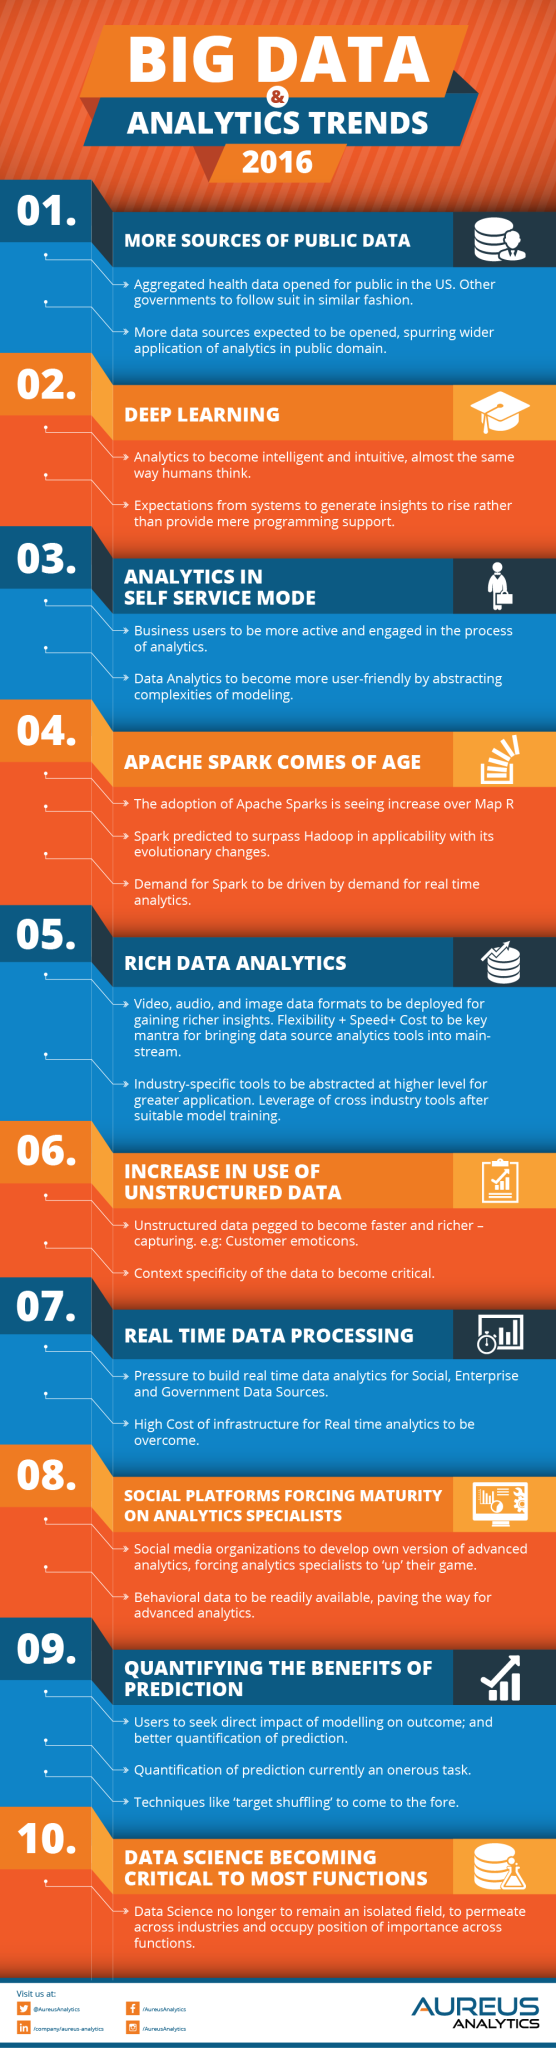 big data analytics trends 2016